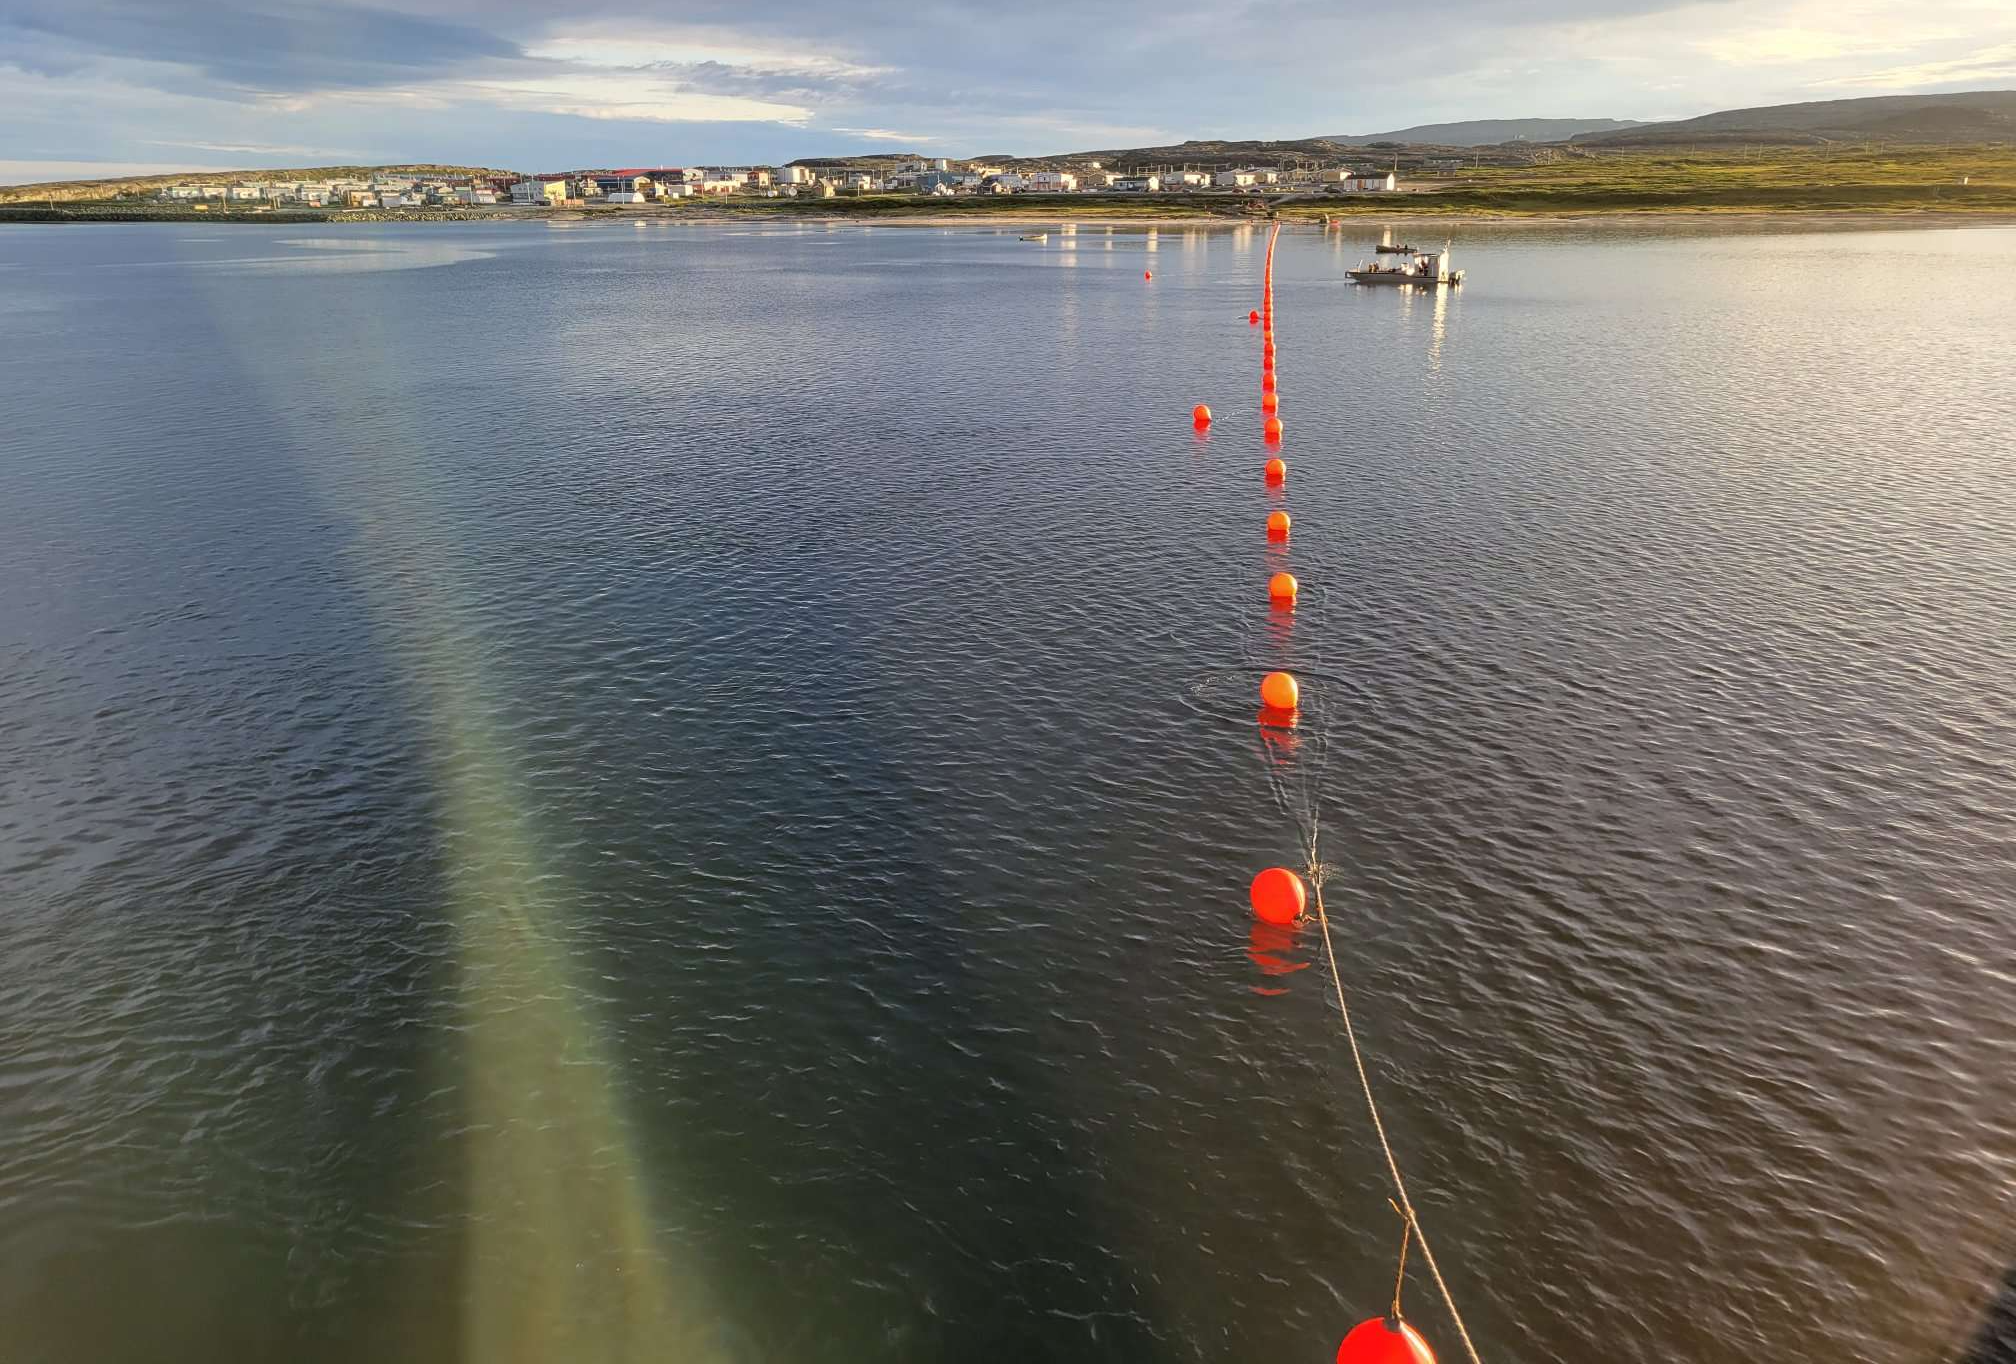 A orange buoy line marks where crews are laying a fibre optic cable from Hudson Bay to the Nunavik village of Umiujaq on Sept. 9. The work is part of a larger Kativik Regional Government project to connect four Hudson coast communities to a fibre network in Chisasibi. Fibre-optic connections to Puvirnituq, Inukjuak, Umiujaq and Kuujjuaraapik are expected to be in operation in early 2022. (Photo courtesy of the KRG)